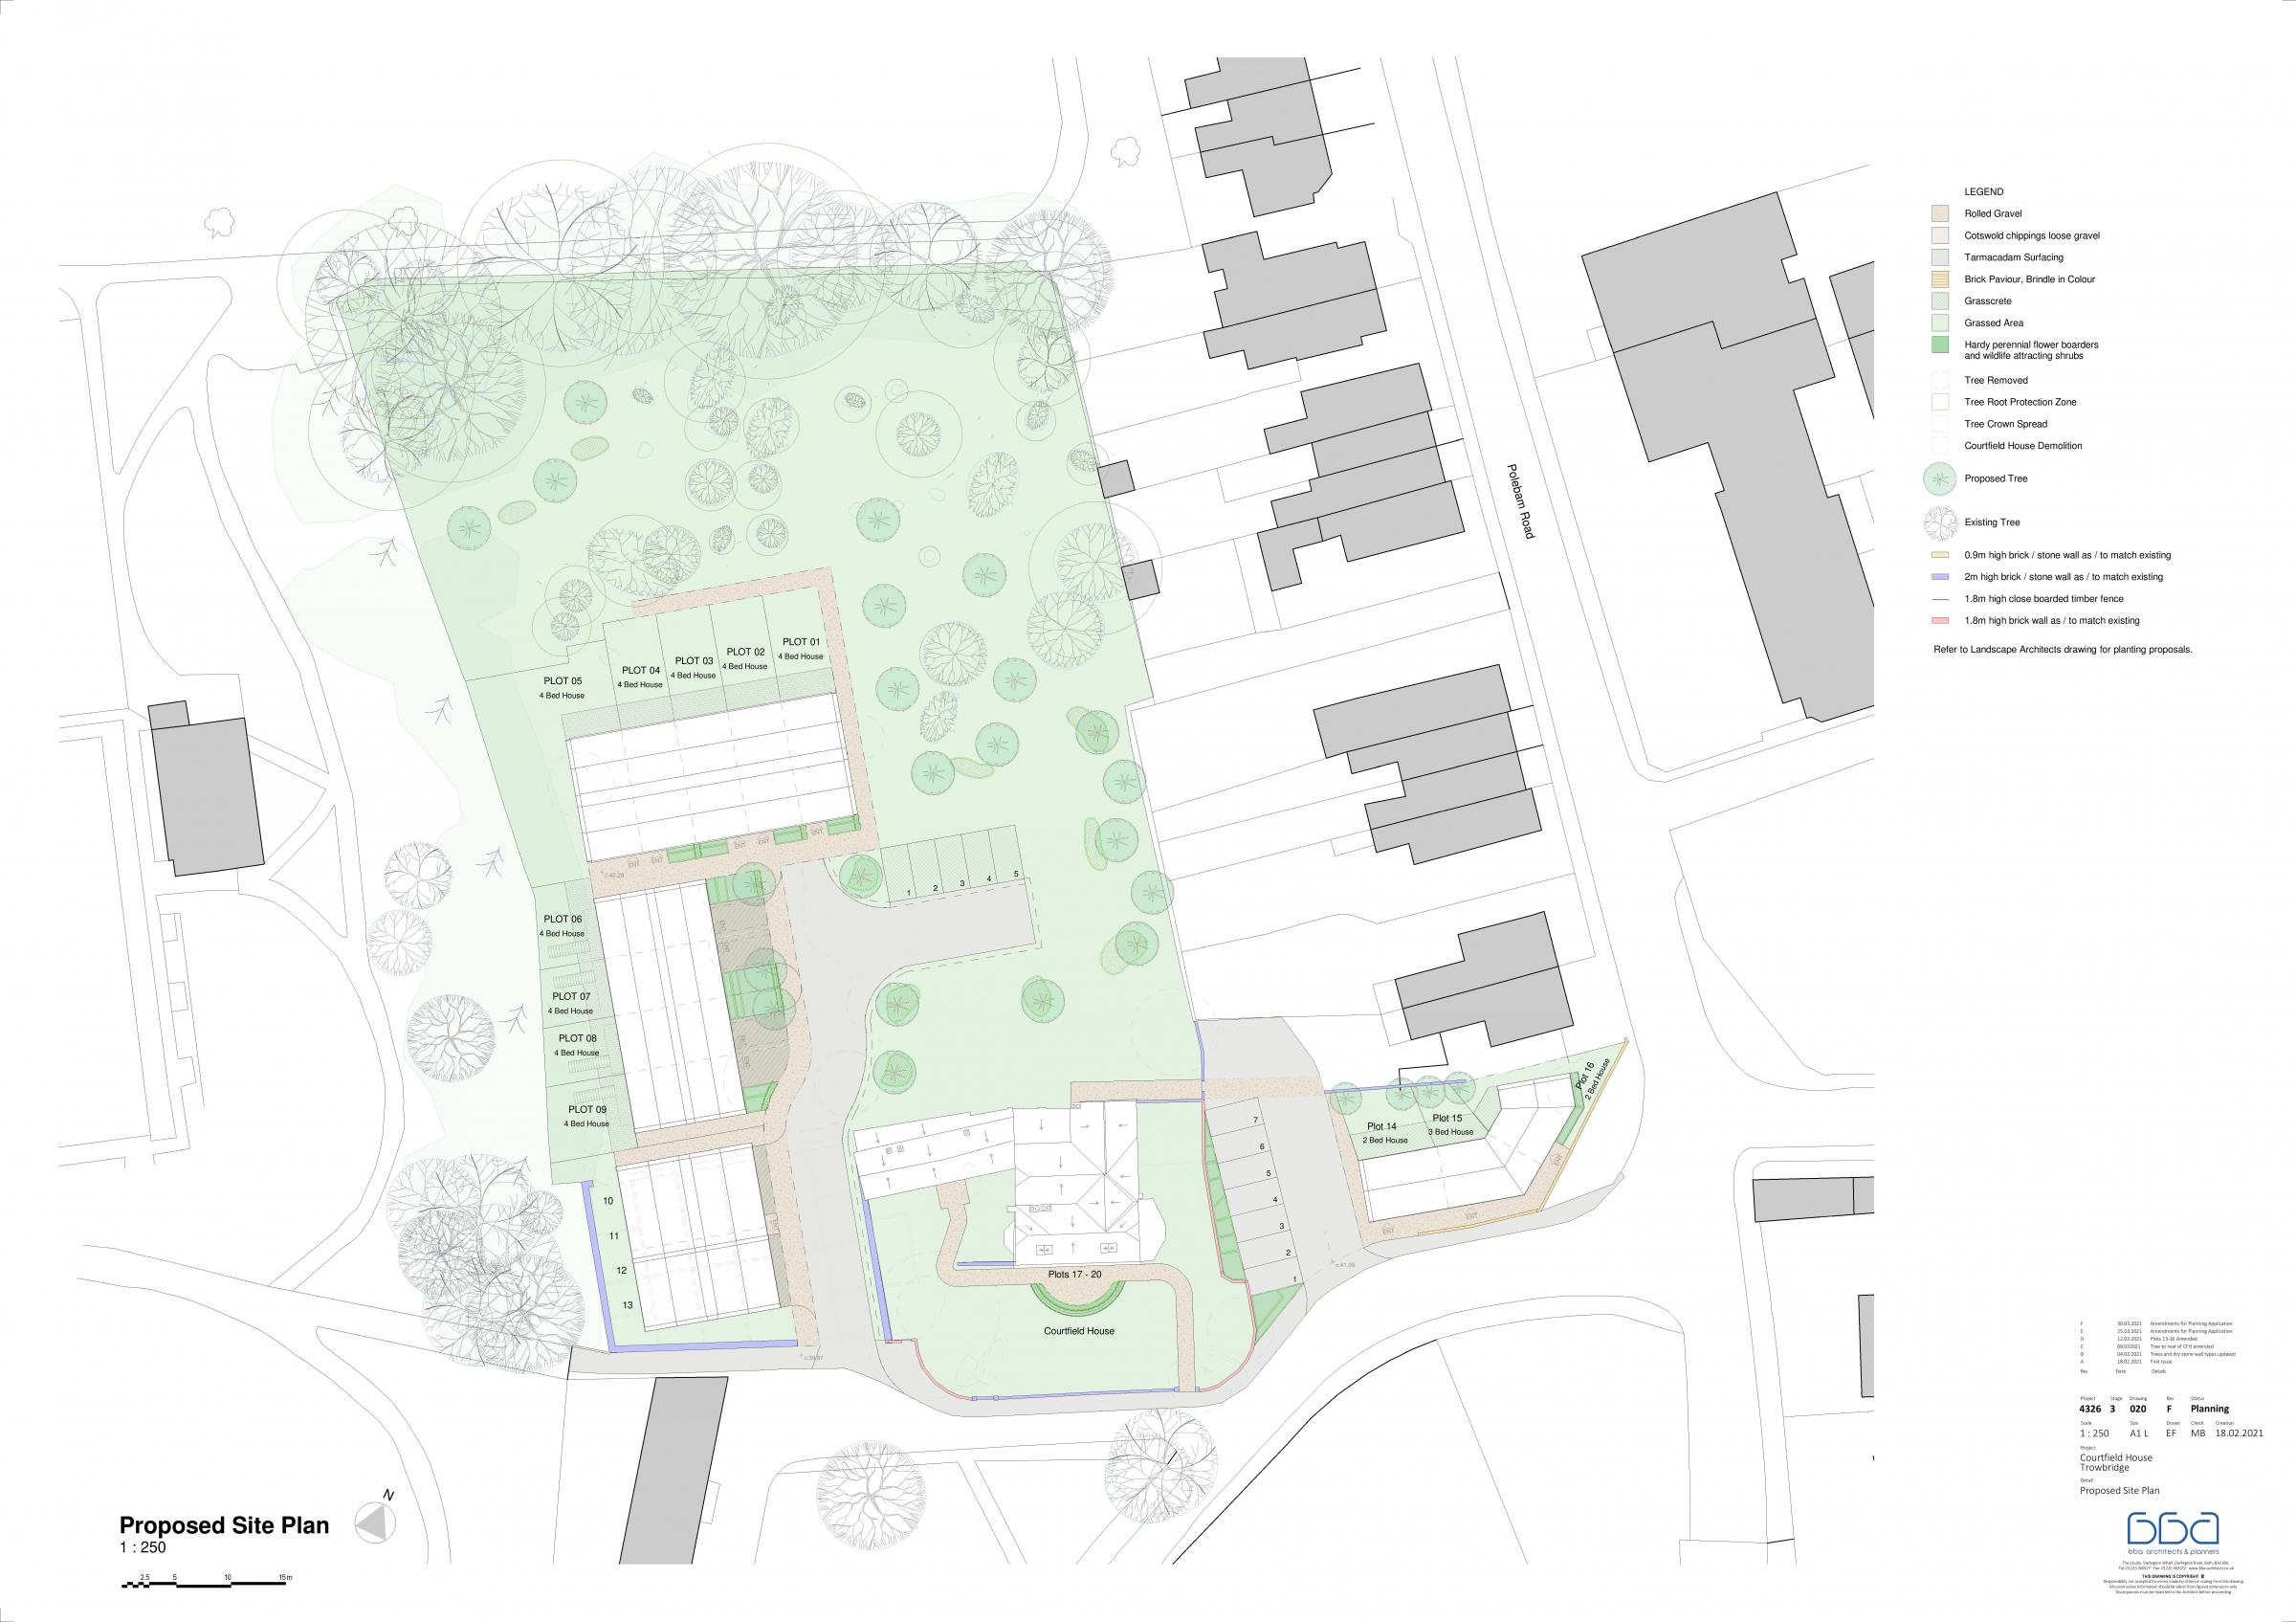 Proposed site plan for Courtfield House